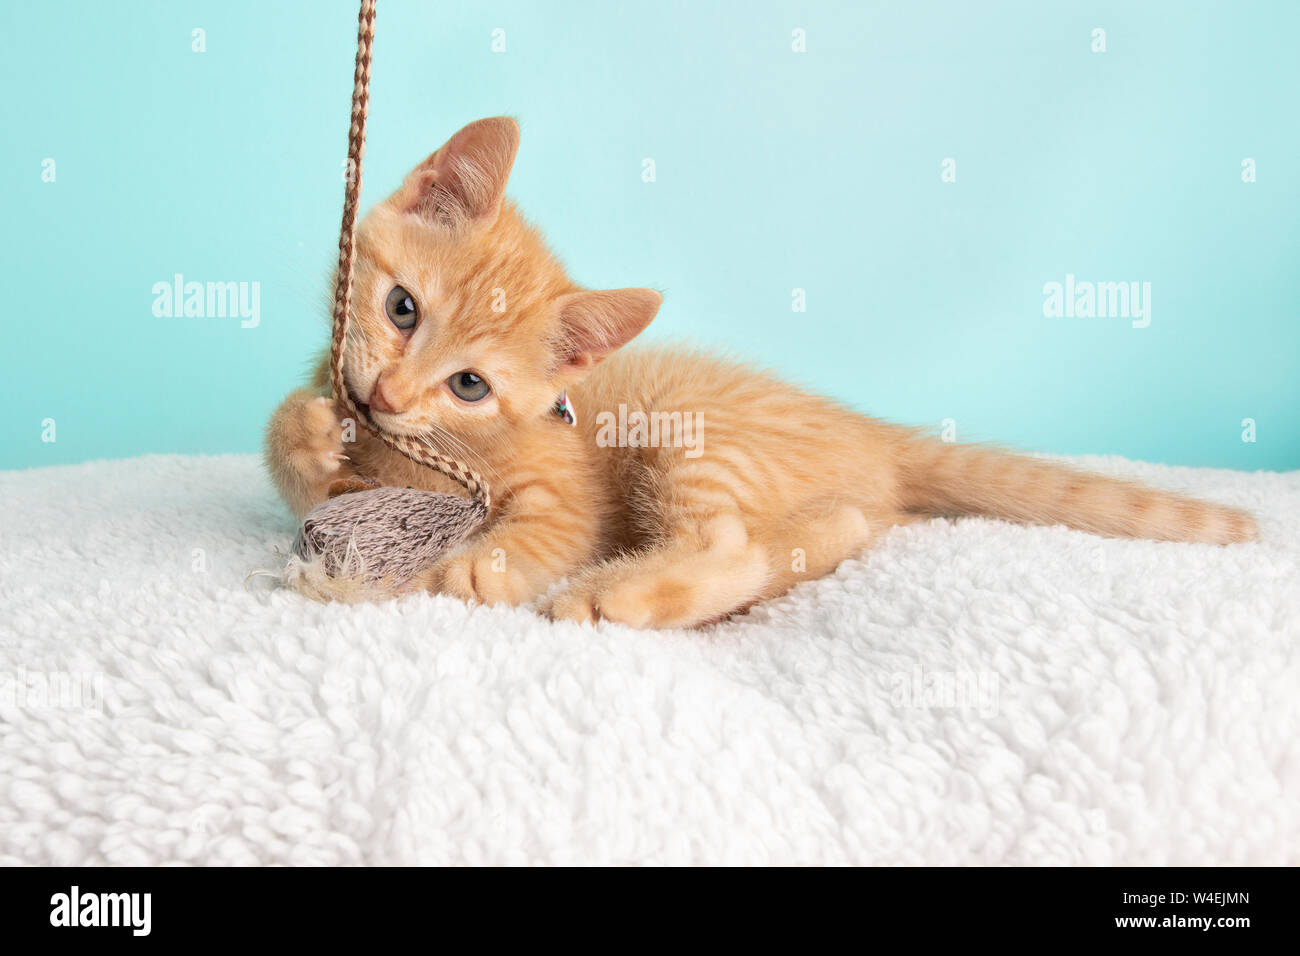 Cute Young Orange Tabby Cat Kitten Rescue Wearing White Flower Bow Tie Lying Down Pawing and Playing with Toy Mouse and String on Blue Background Stock Photo